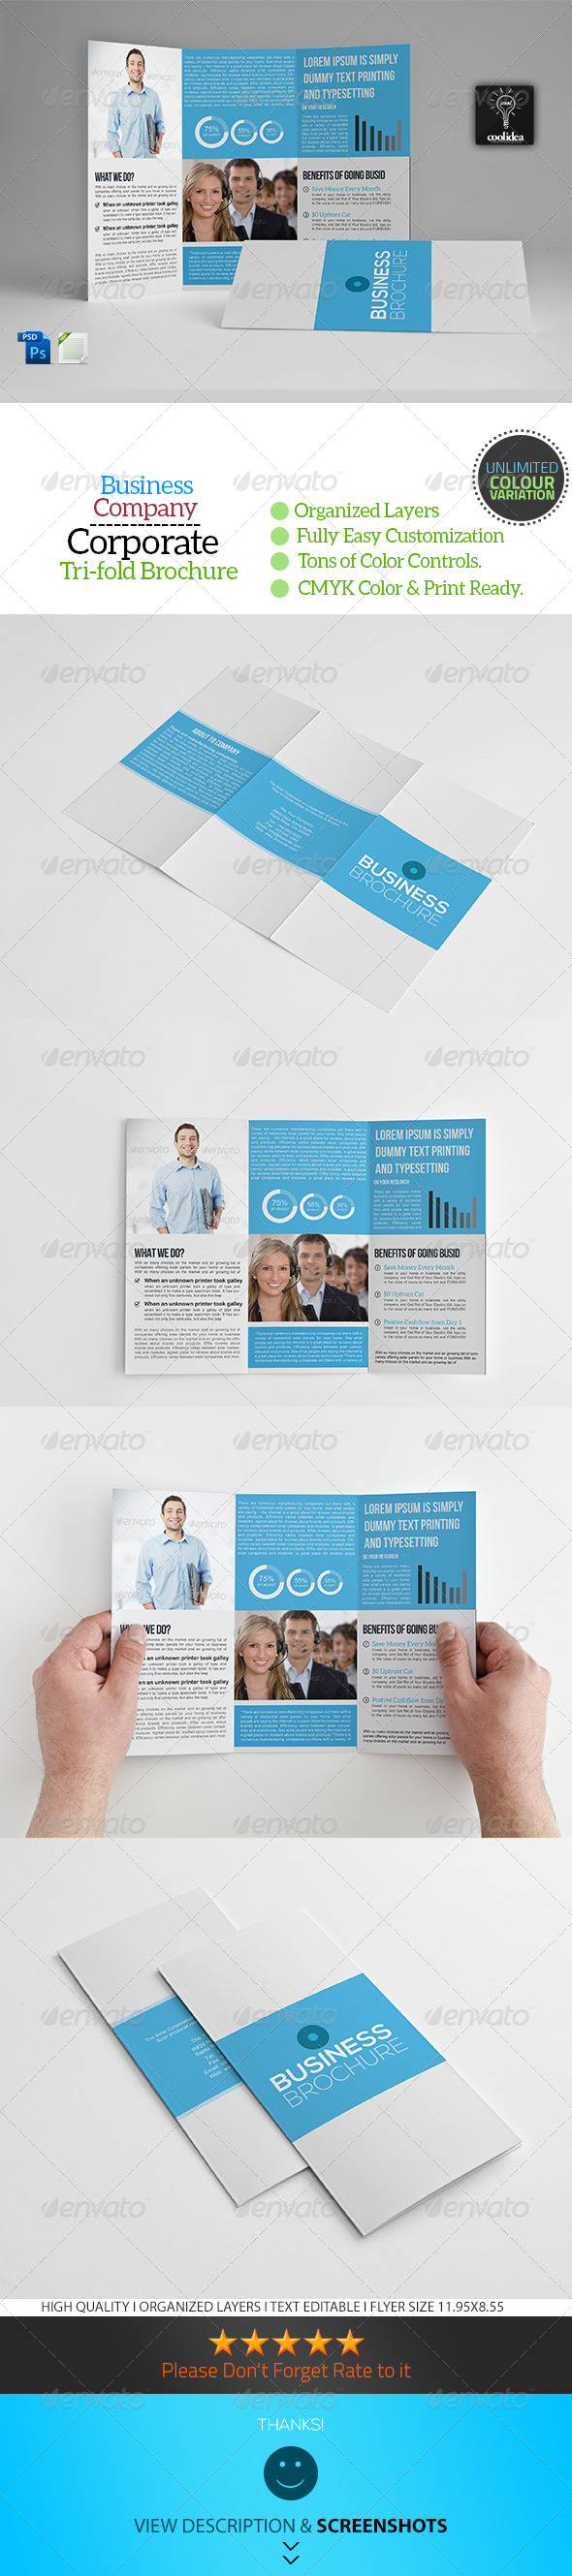 A4 Trifold Business Brochure Template Vol04